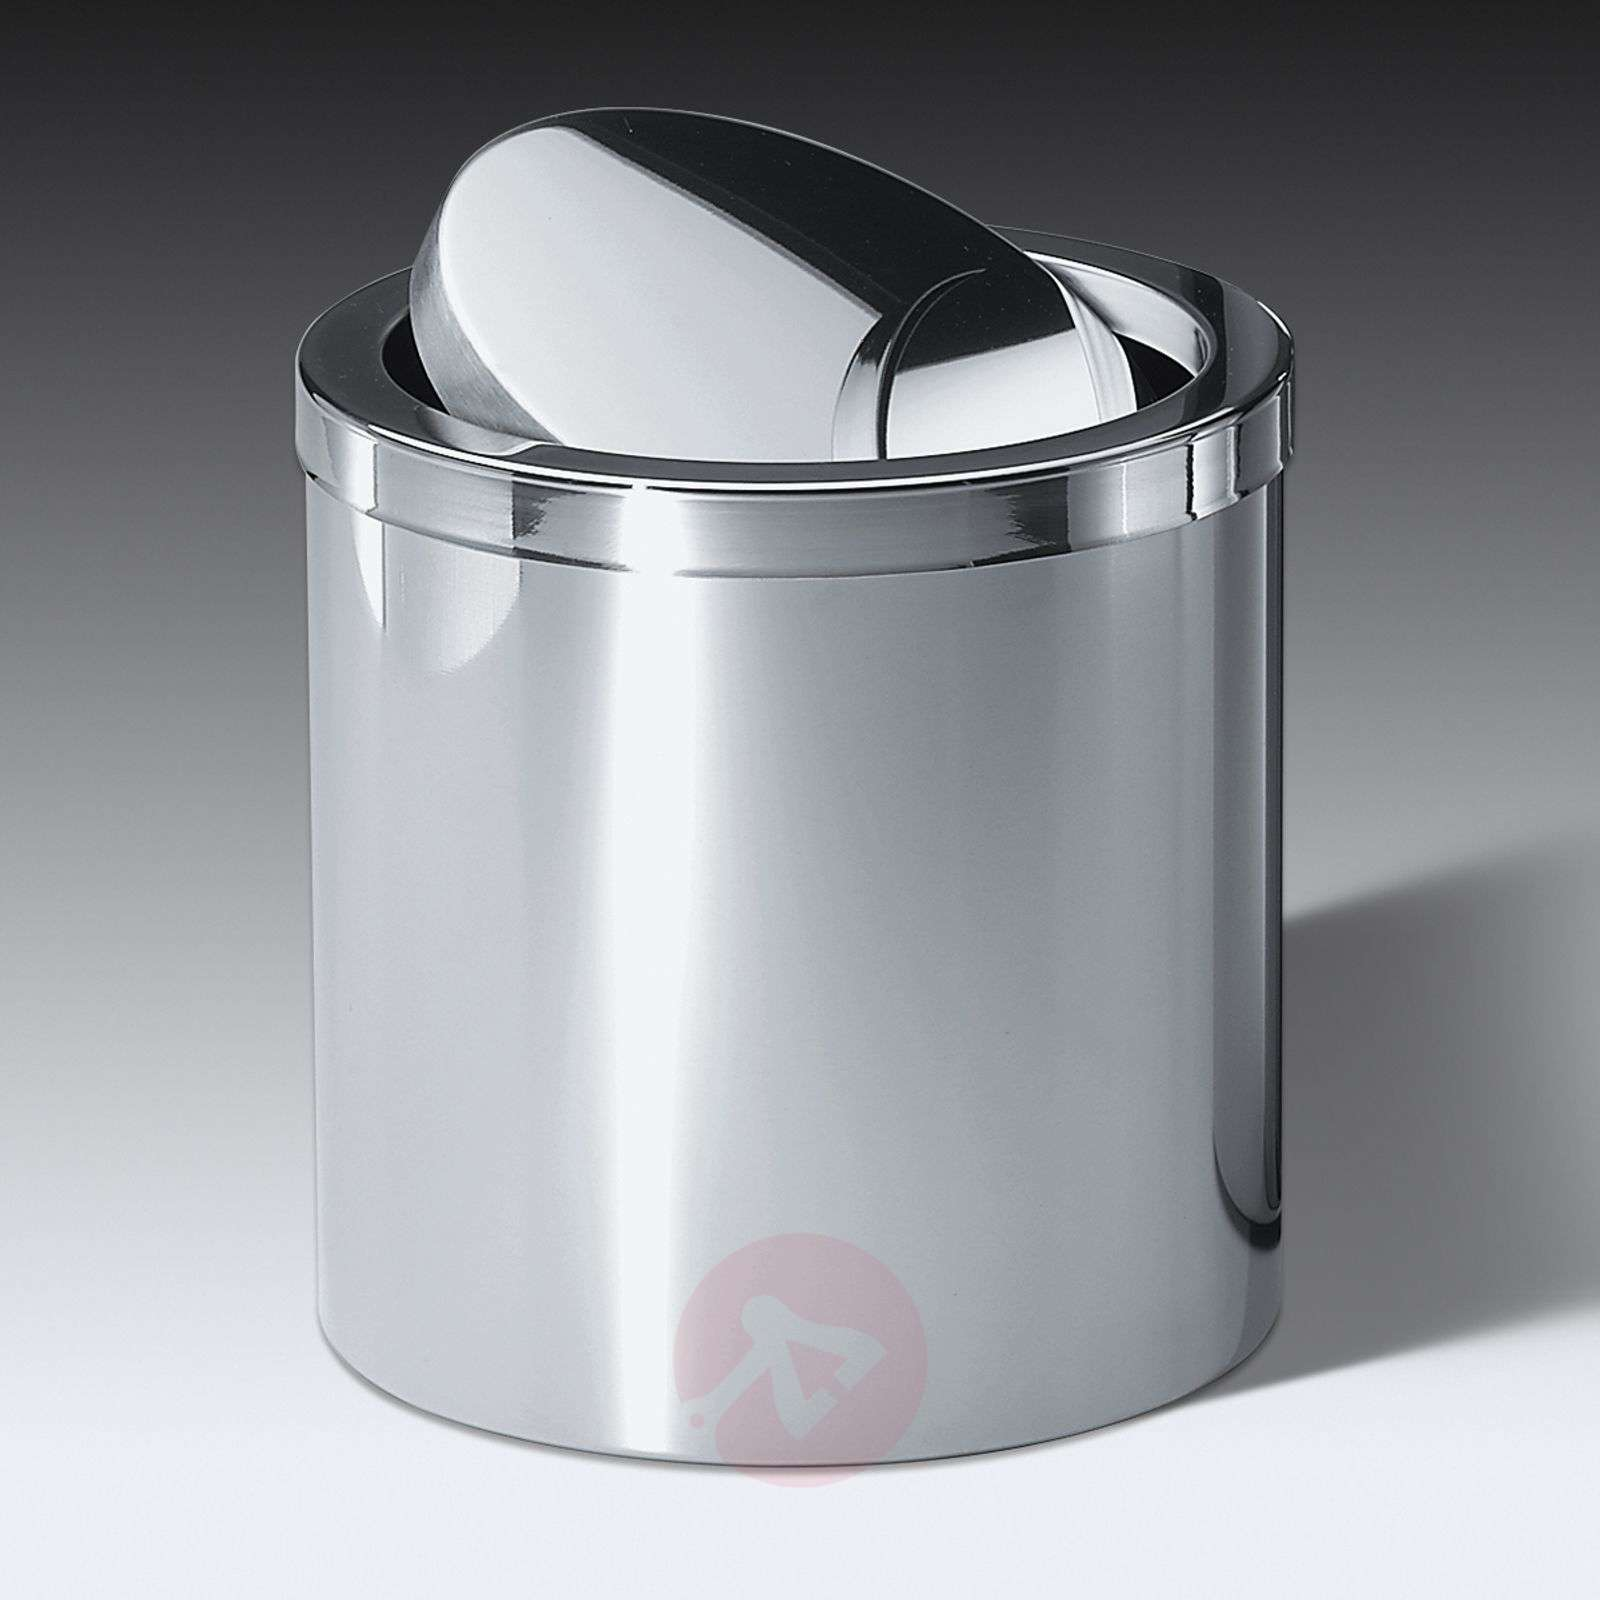 BIN waste paper container, height 21cm-2504384X-01